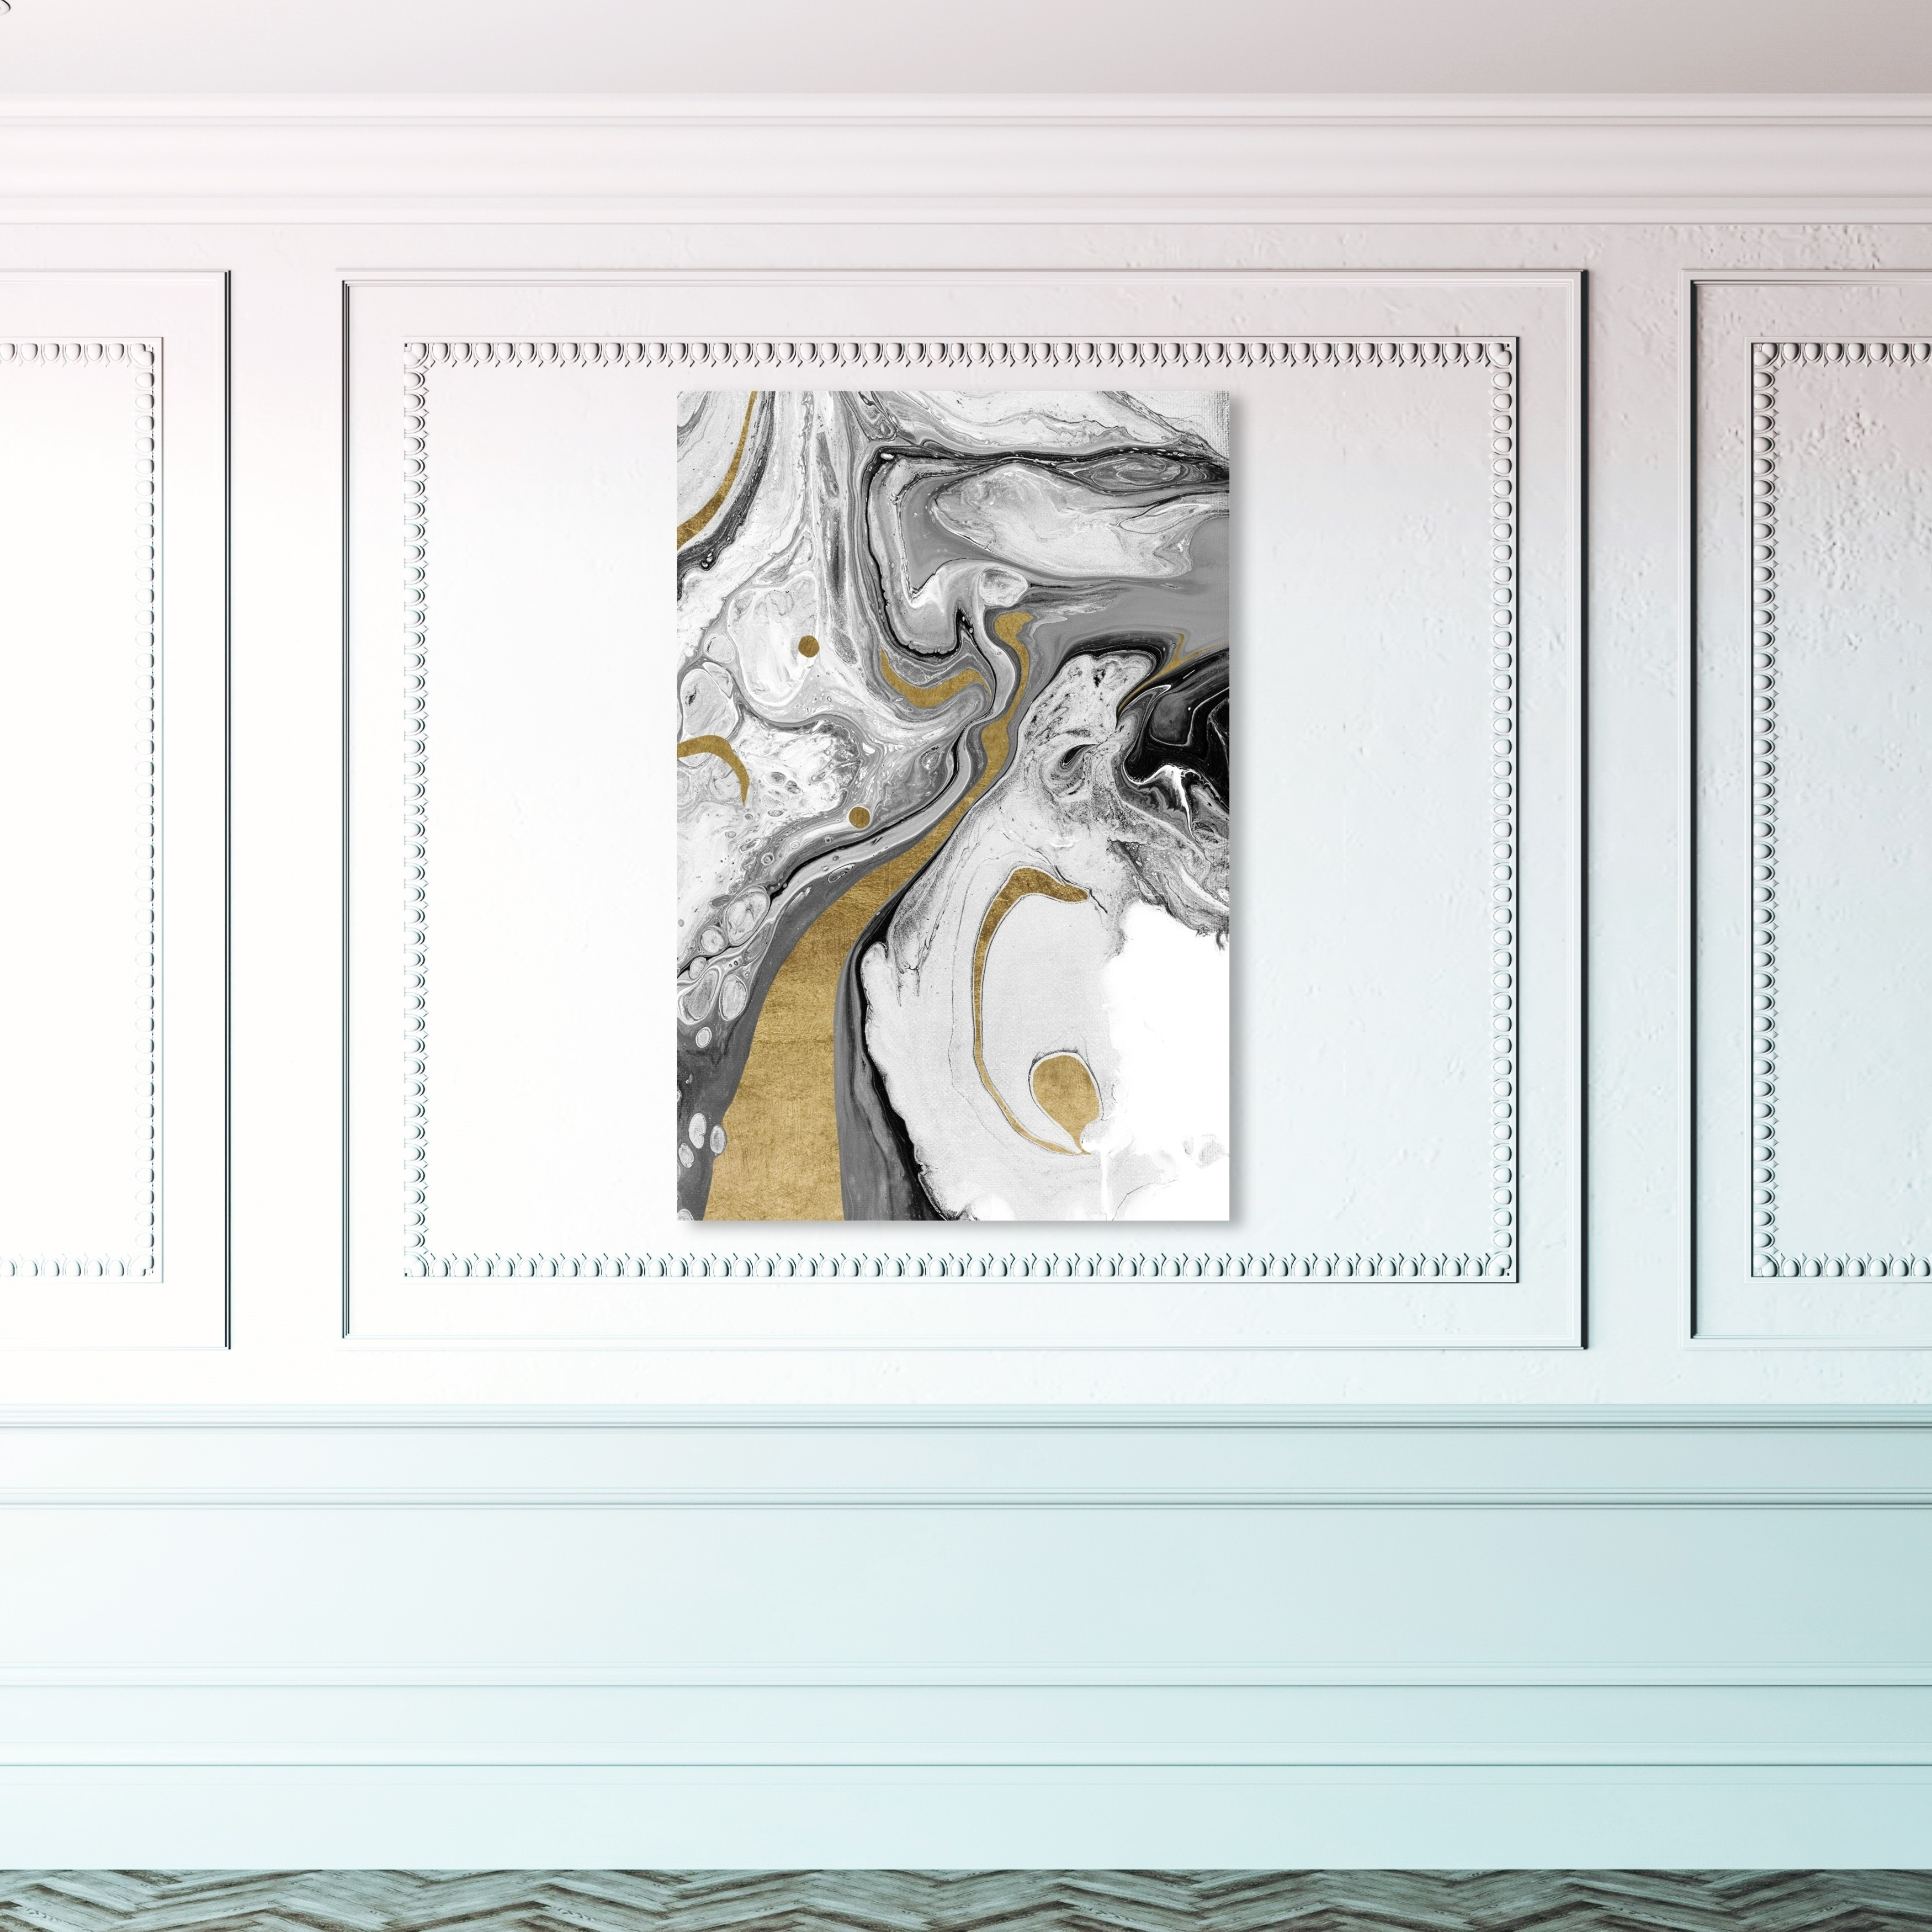 WATER DRAGON ABSTRACT DESIGN CANVAS WALL ART PRINT PICTURE READY TO HANG